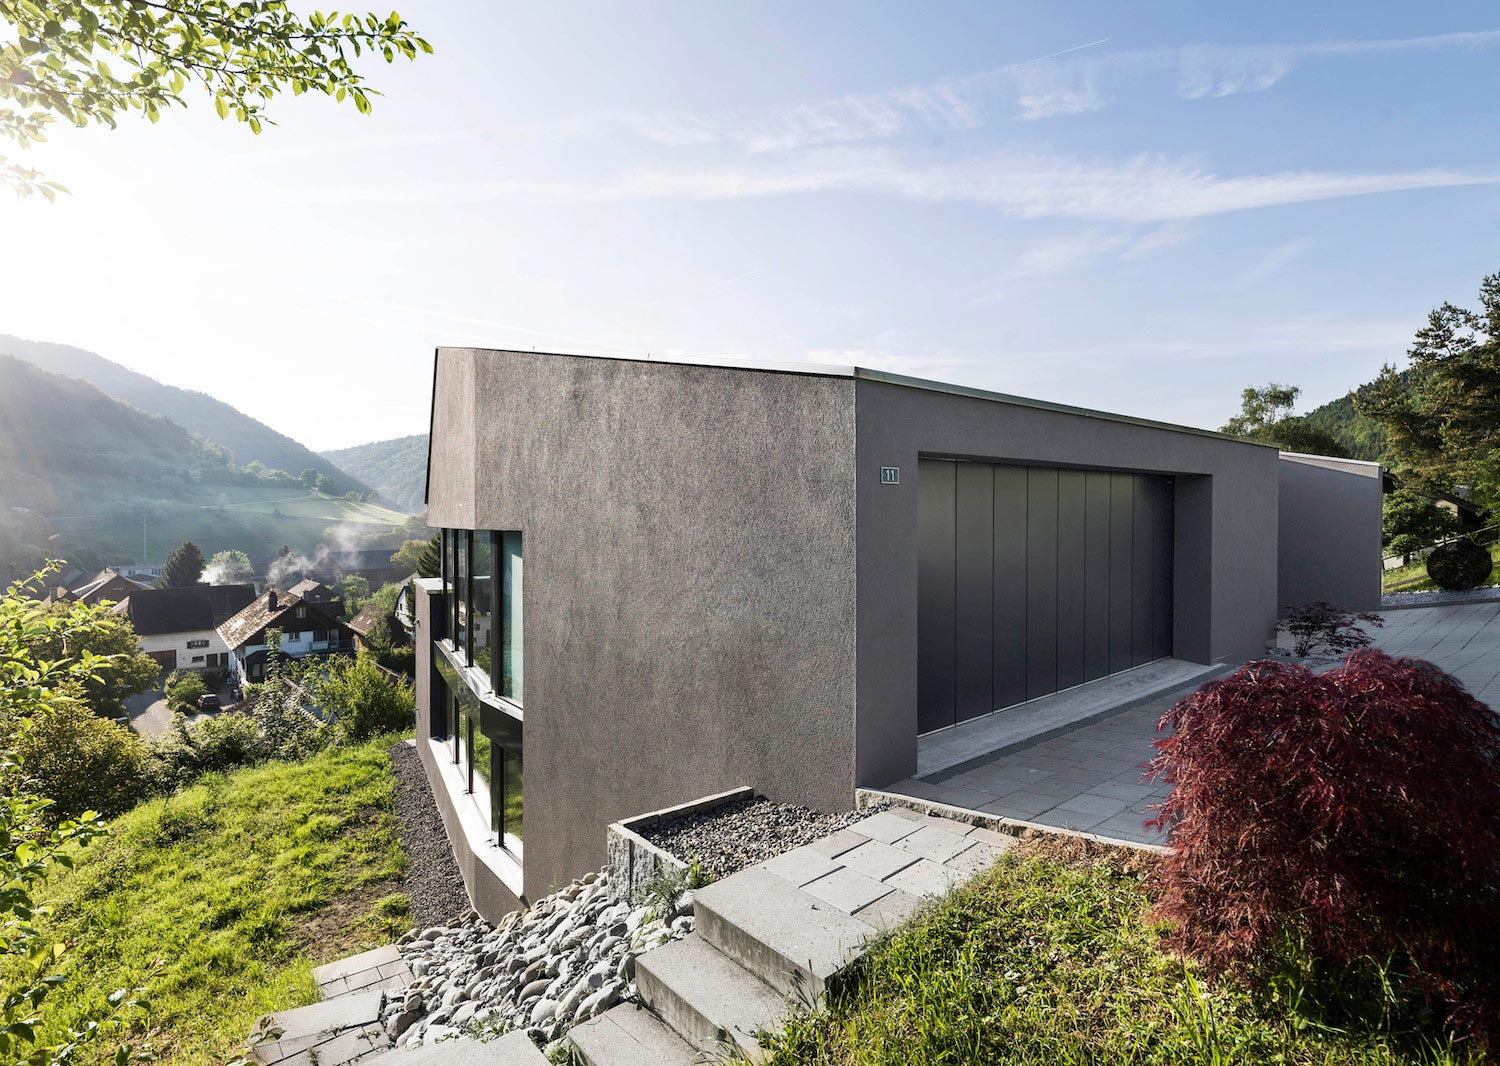 Single family house built on a steep slope that leads to